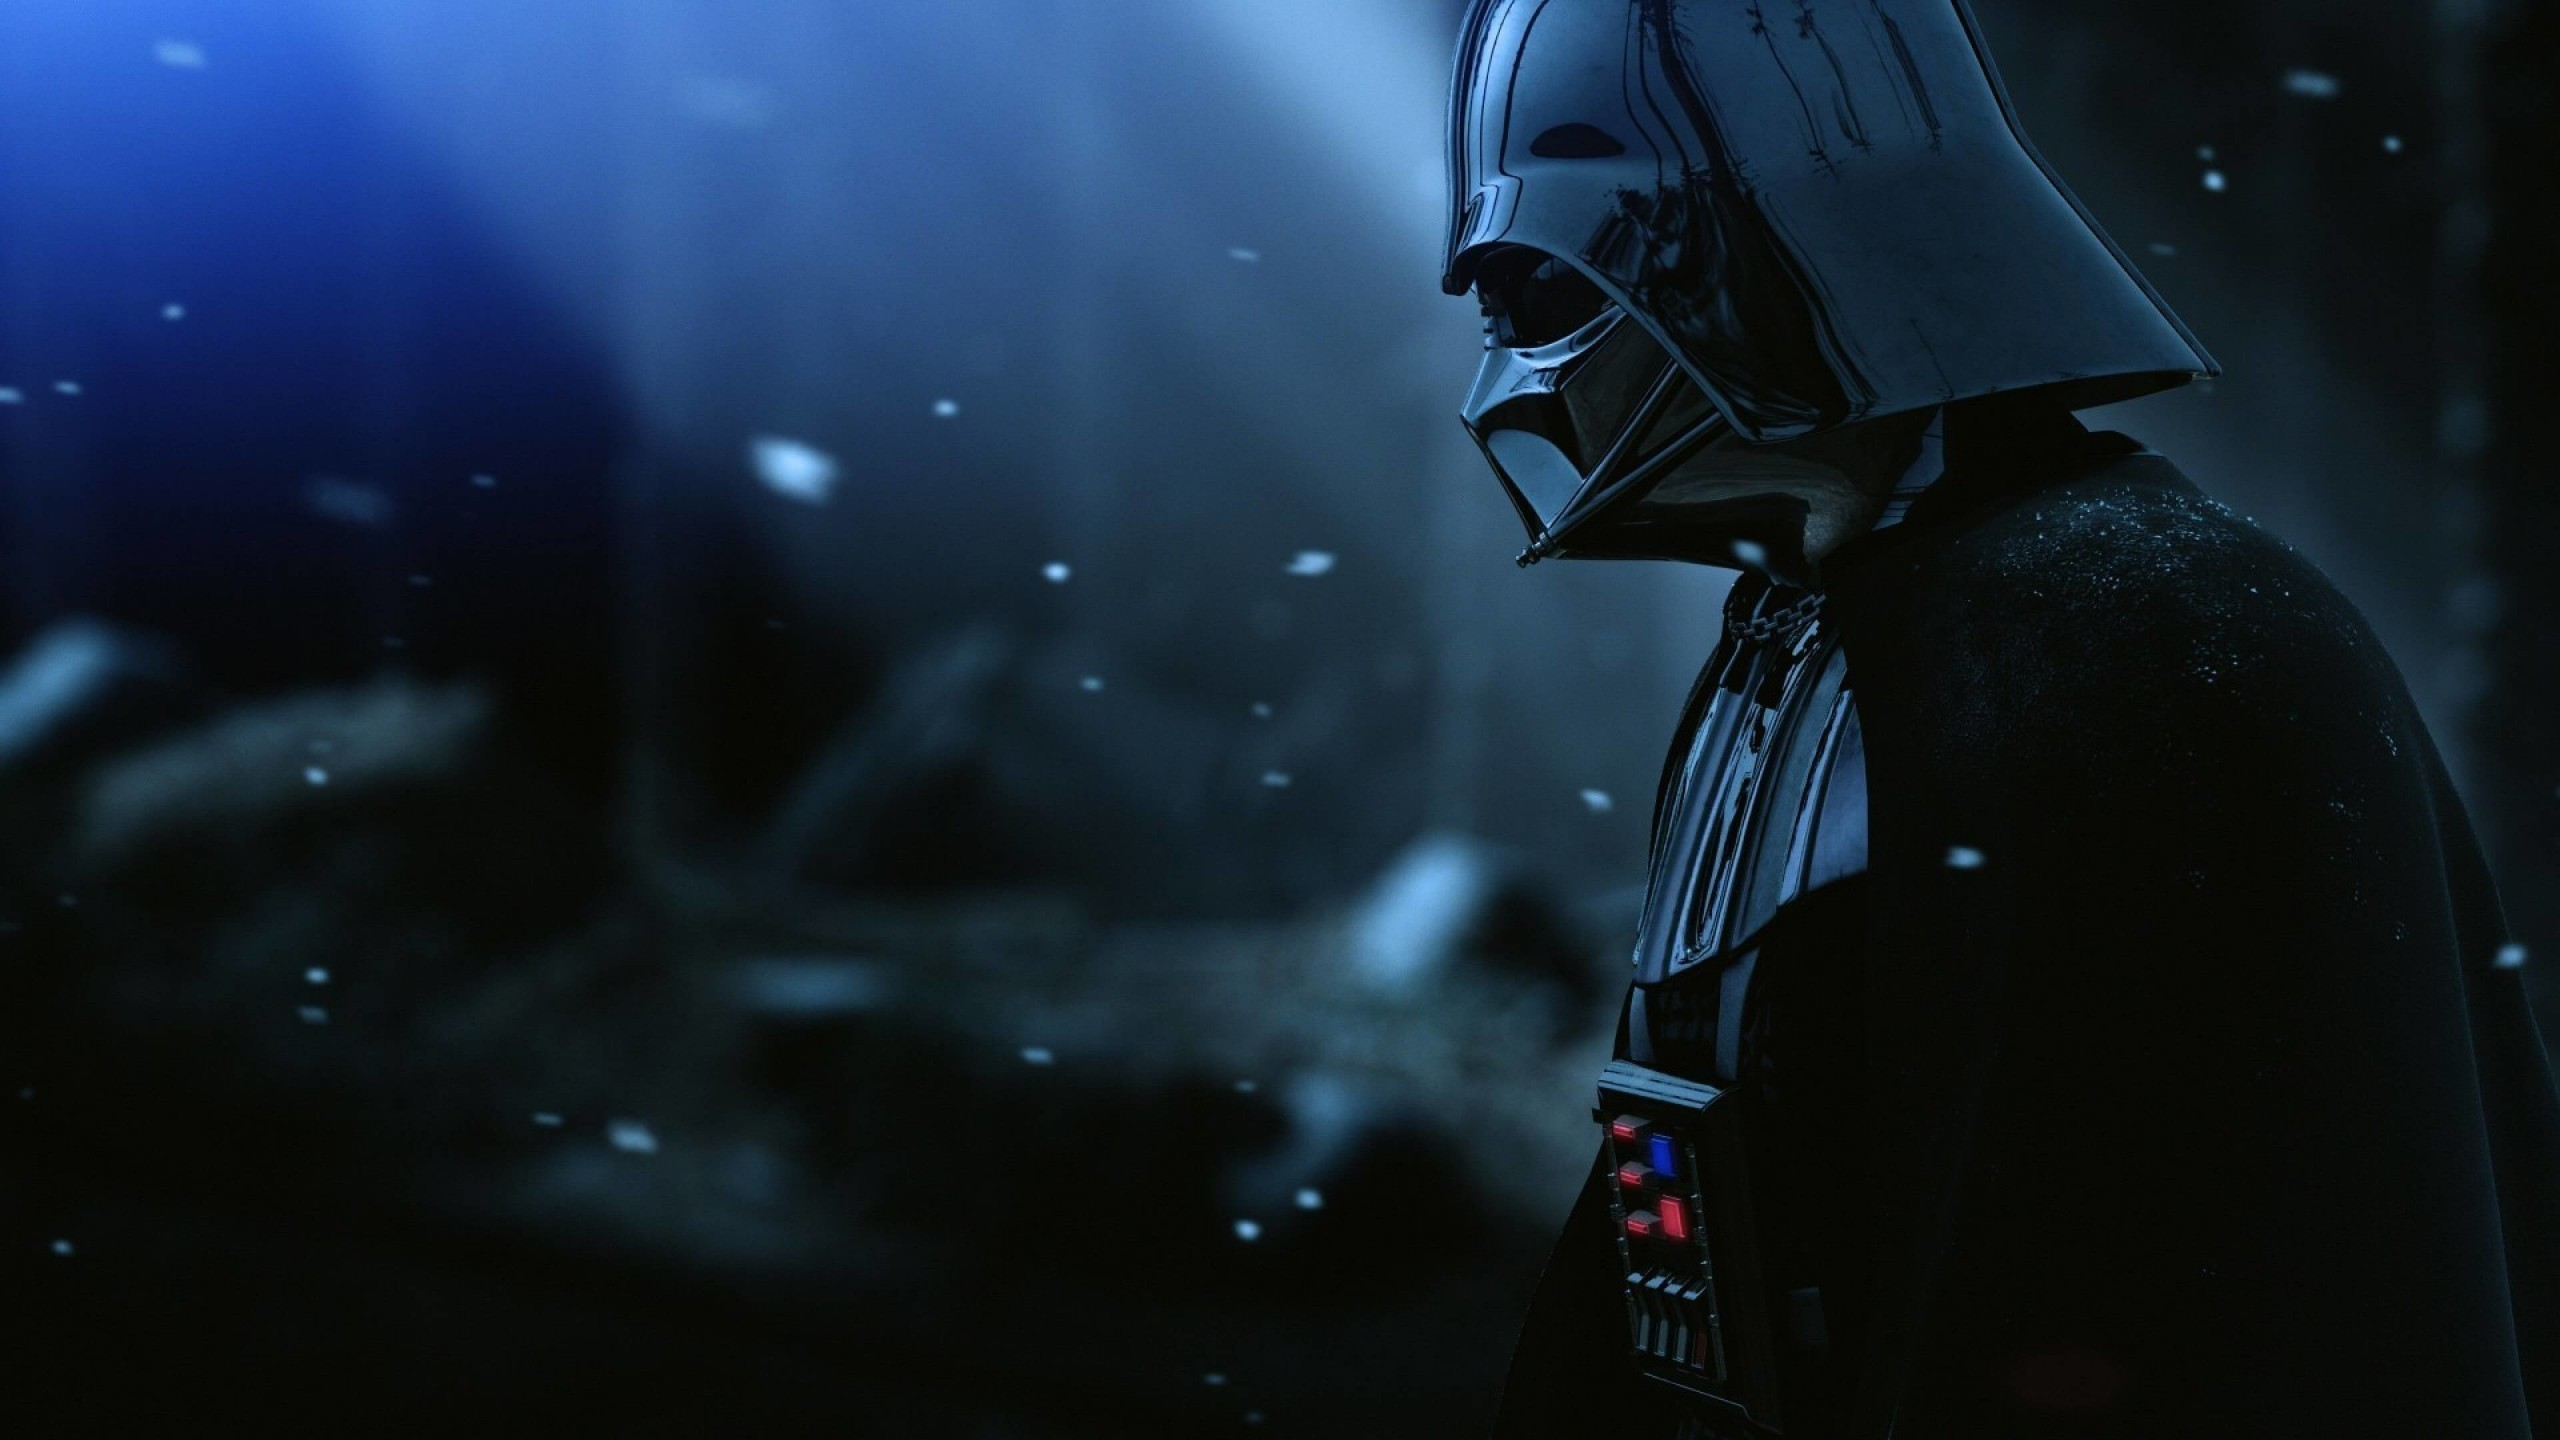 Darth Vader - The Force Unleashed 2 Wallpaper for Social Media YouTube Channel Art